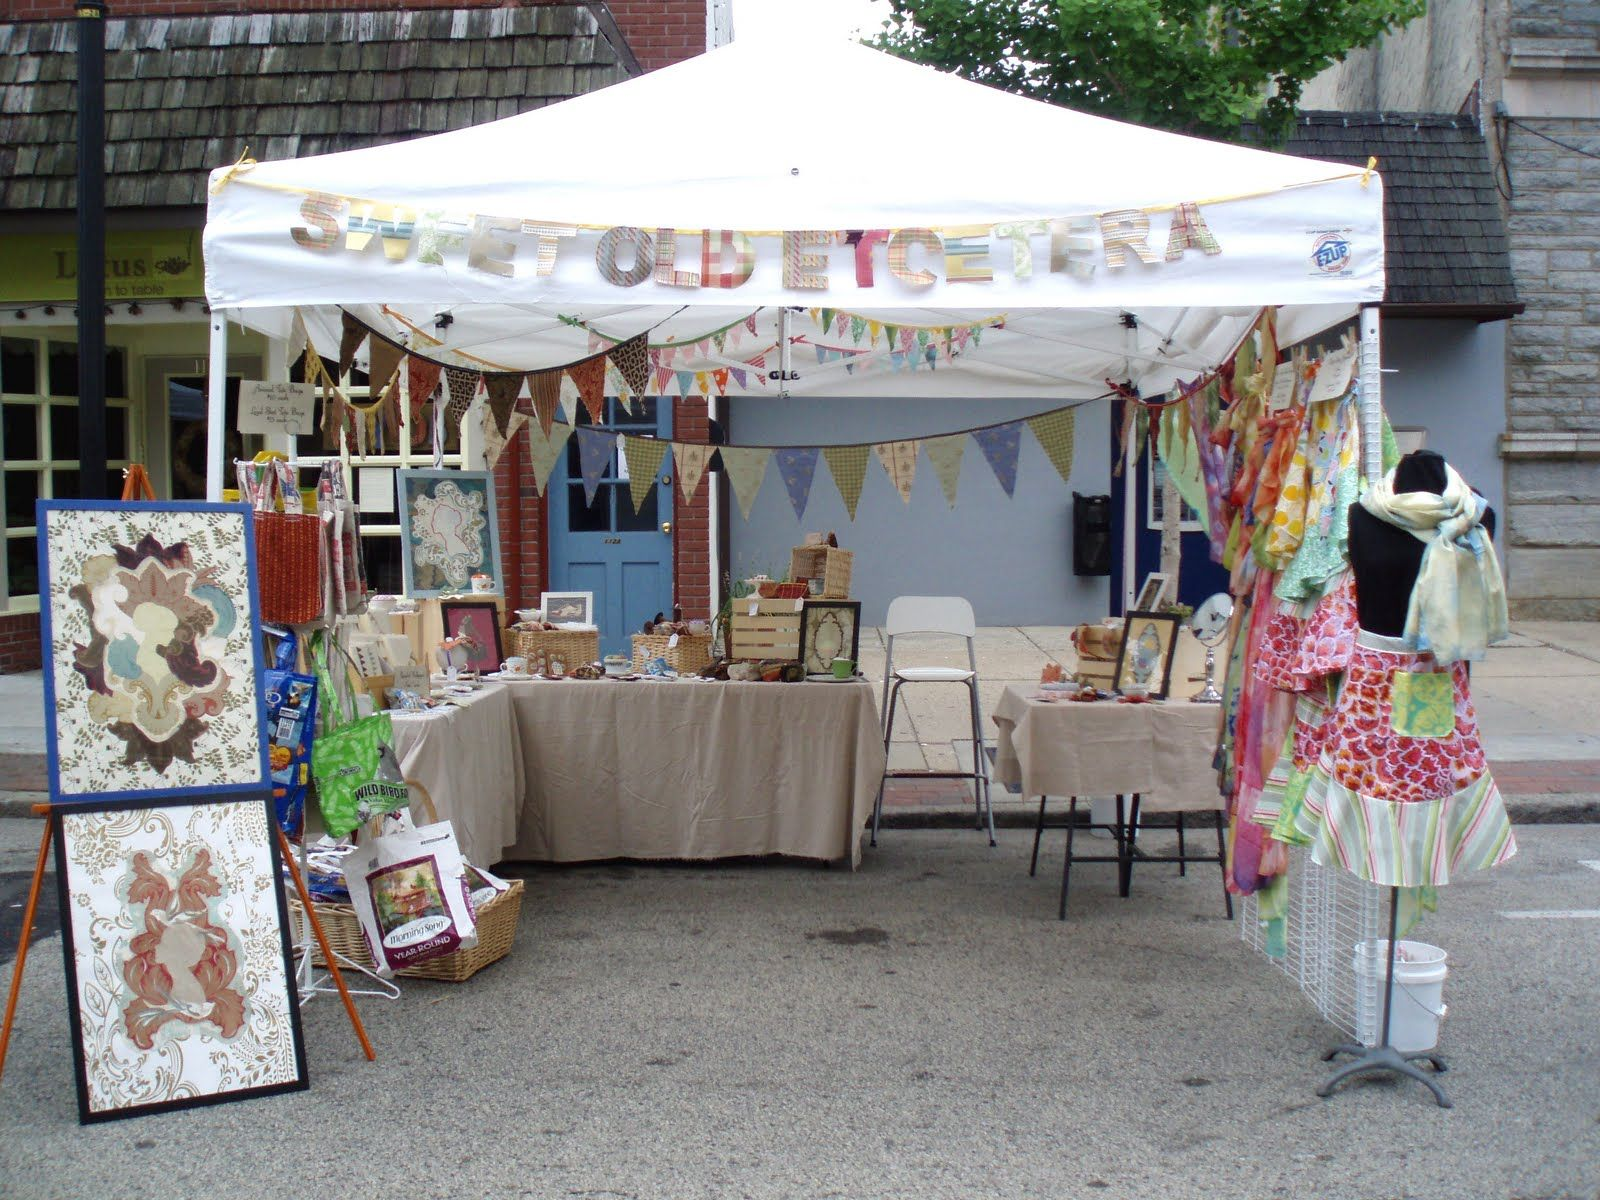 Gorgeous craft show tents google search jewelry booth for Display tents for craft fairs